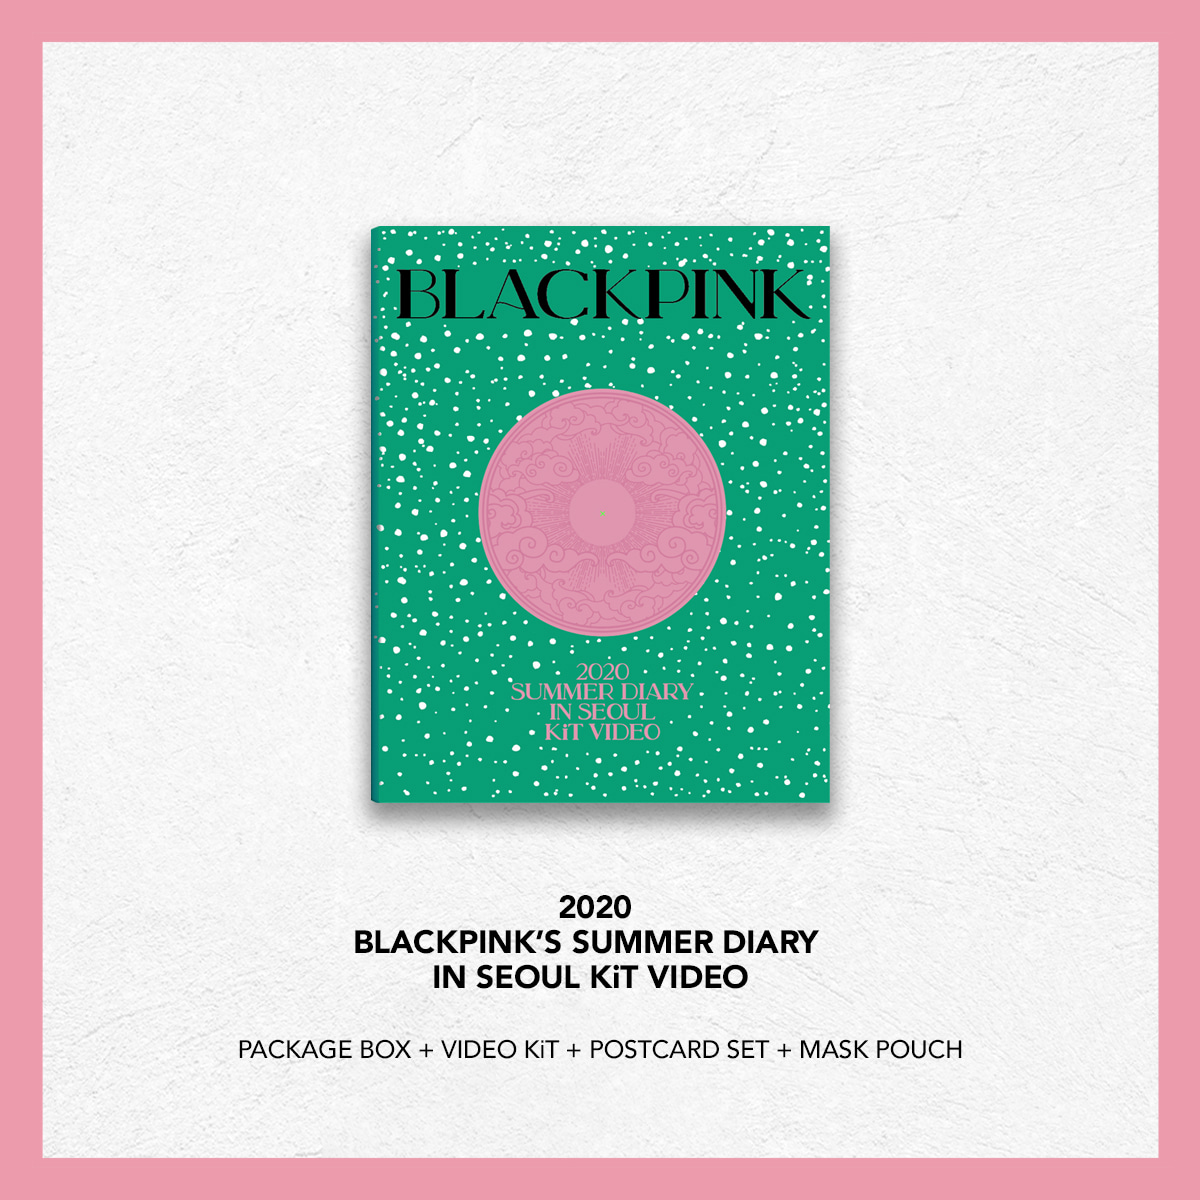 블랙핑크 - 2020 BLACKPINK'S SUMMER DIARY IN SEOUL [키트 비디오]